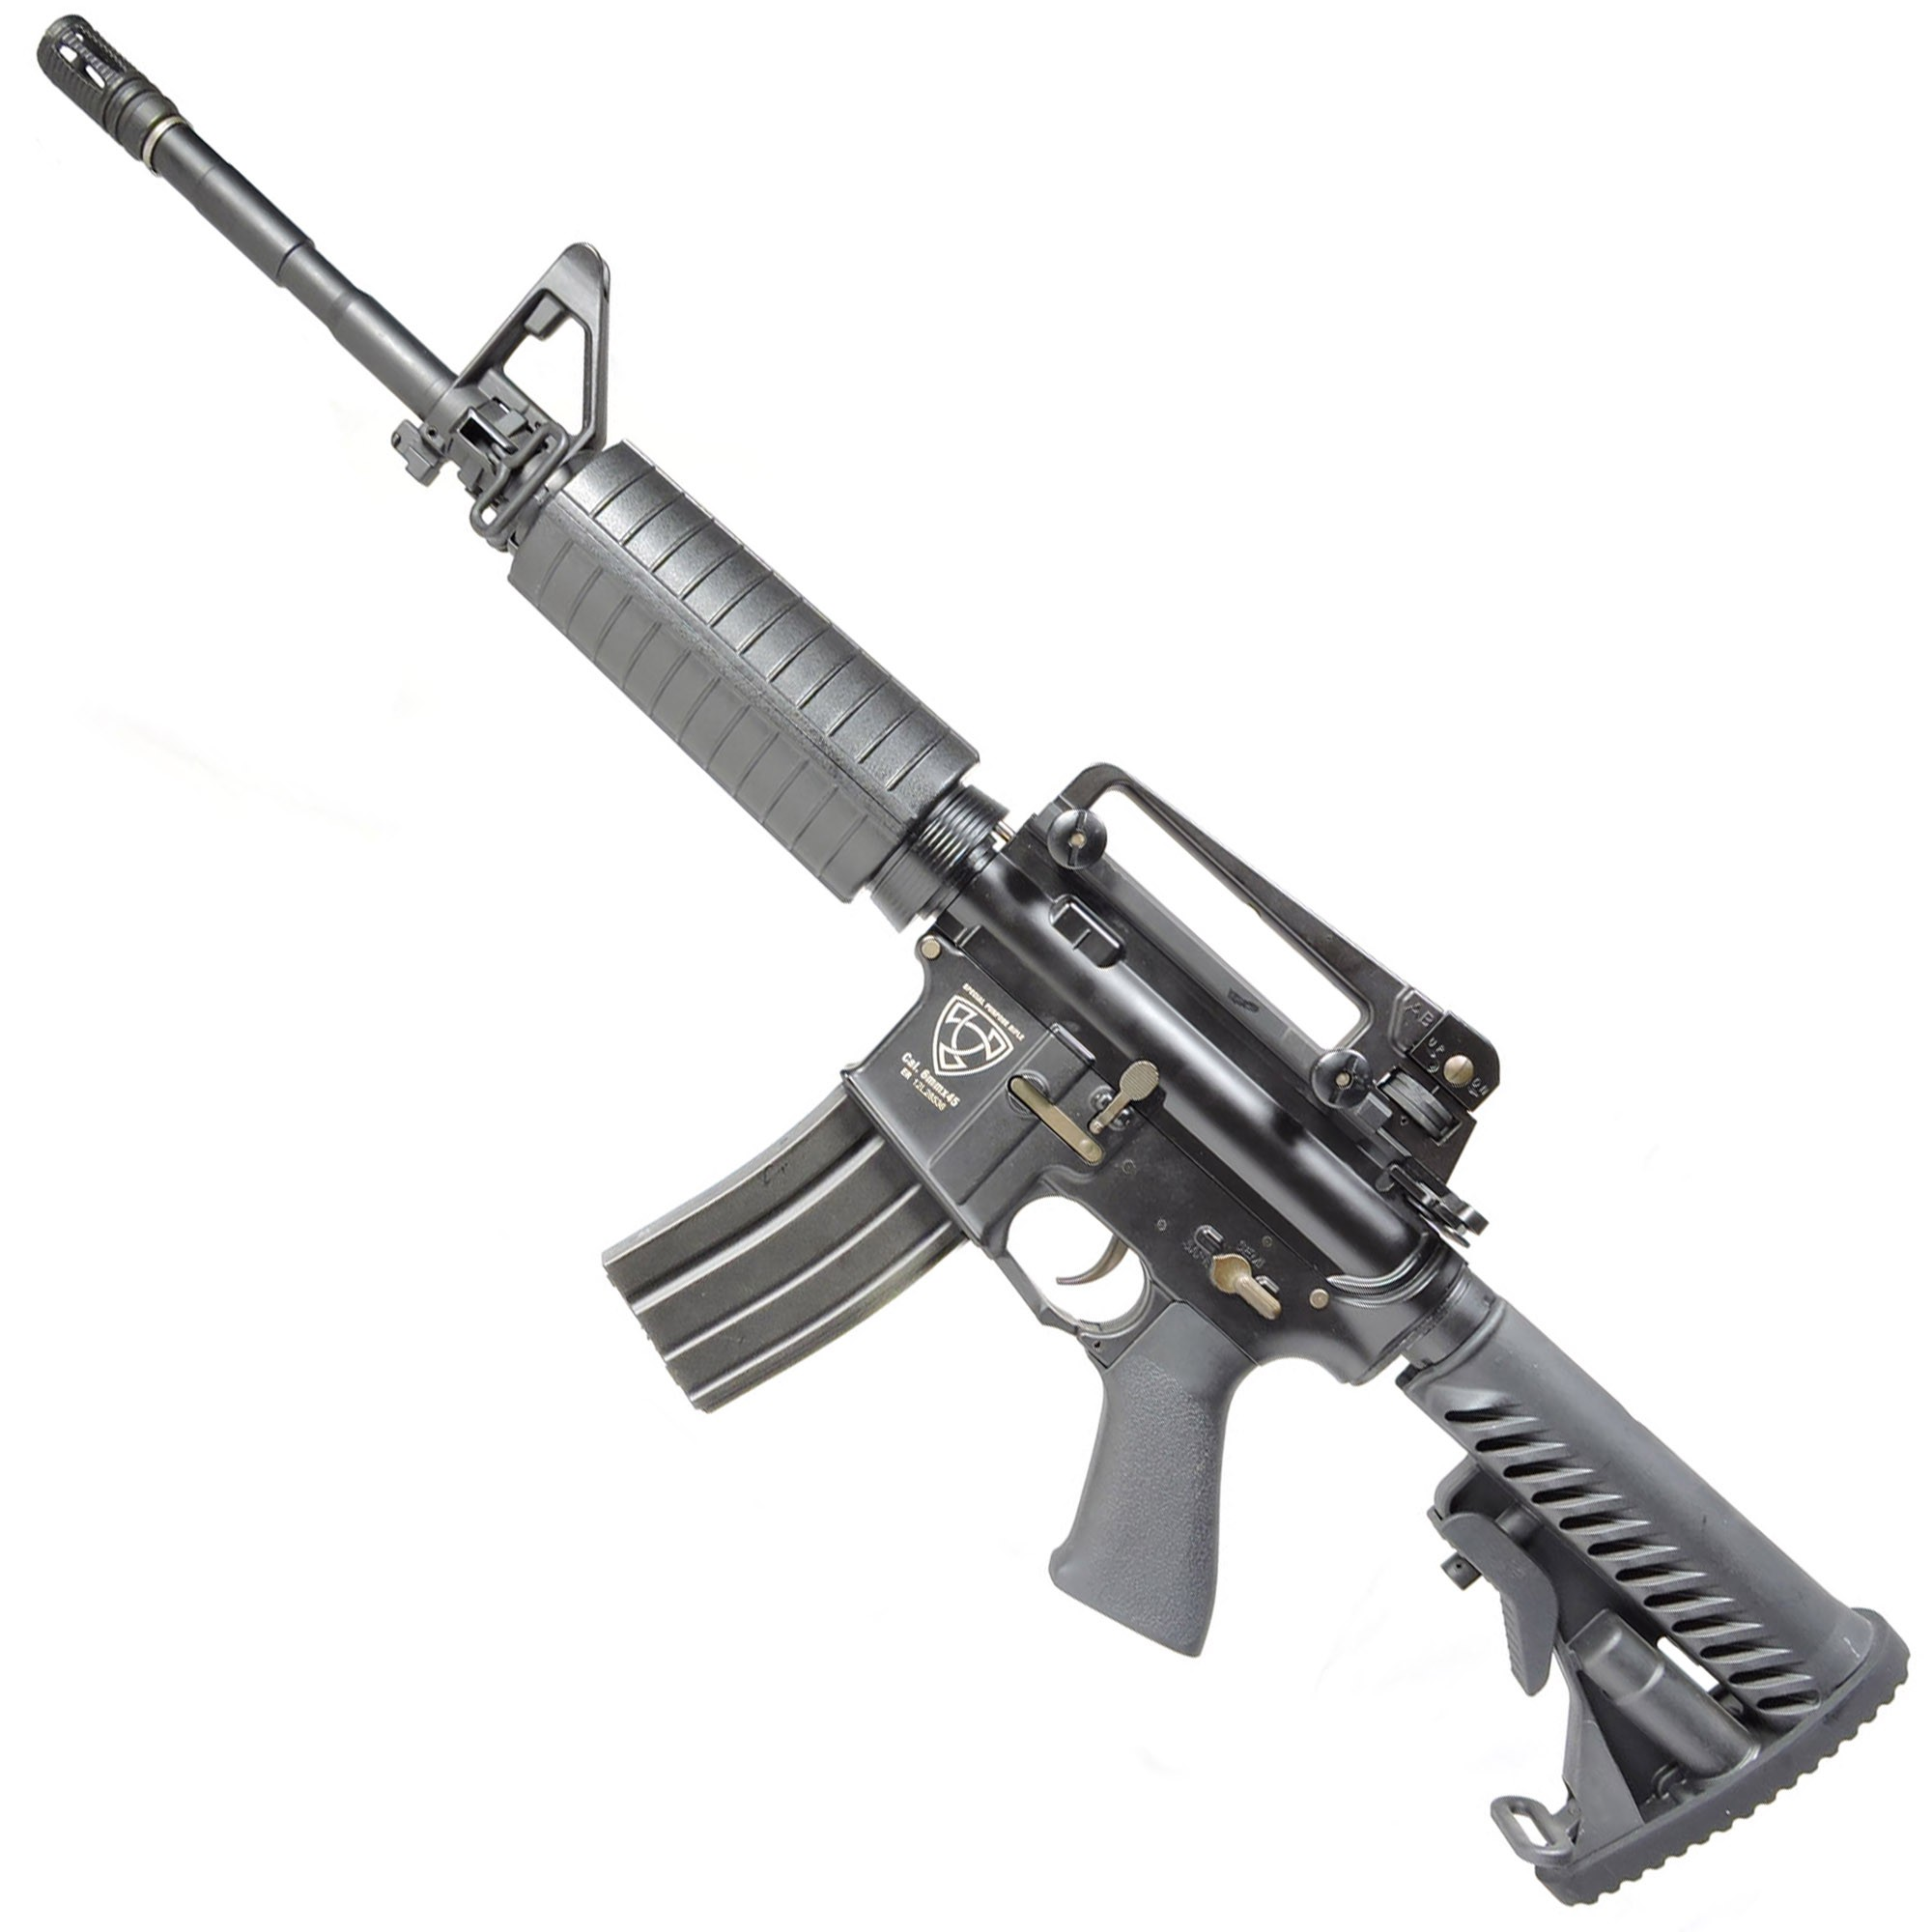 RIFLE AIRSOFT AEG M4A1 STYLE FULL METAL BLOW BACK ASR101 - APS